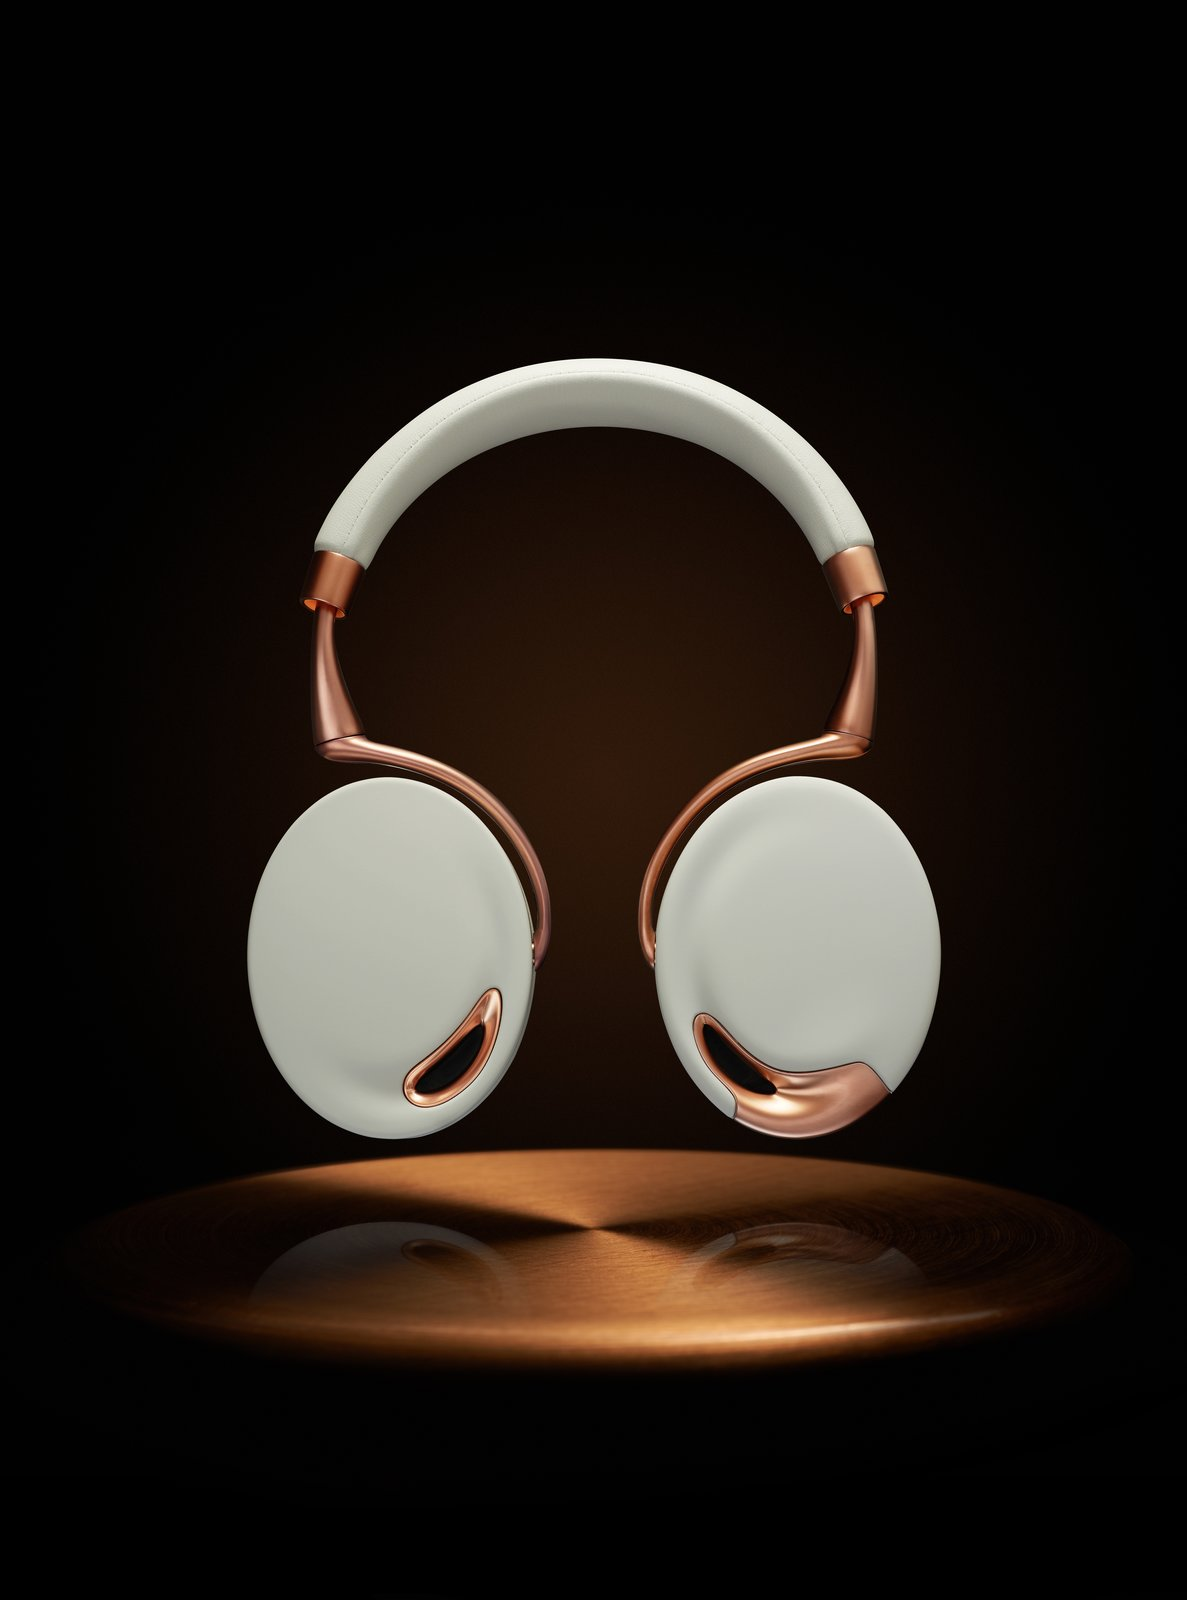 Zik Headphones -- Parrot (2012)  Audiophiles appreciate the sound quality and intuitive, motion-sensitive commands -- swipe the right earcup to increase the volume, take of the headphones and the music pauses-- built into this high-end headphones. Design fans will be equally engrossed with the generous curves and shapely form in Starck's creation. Iconic Philippe Starck Designs  by Patrick Sisson